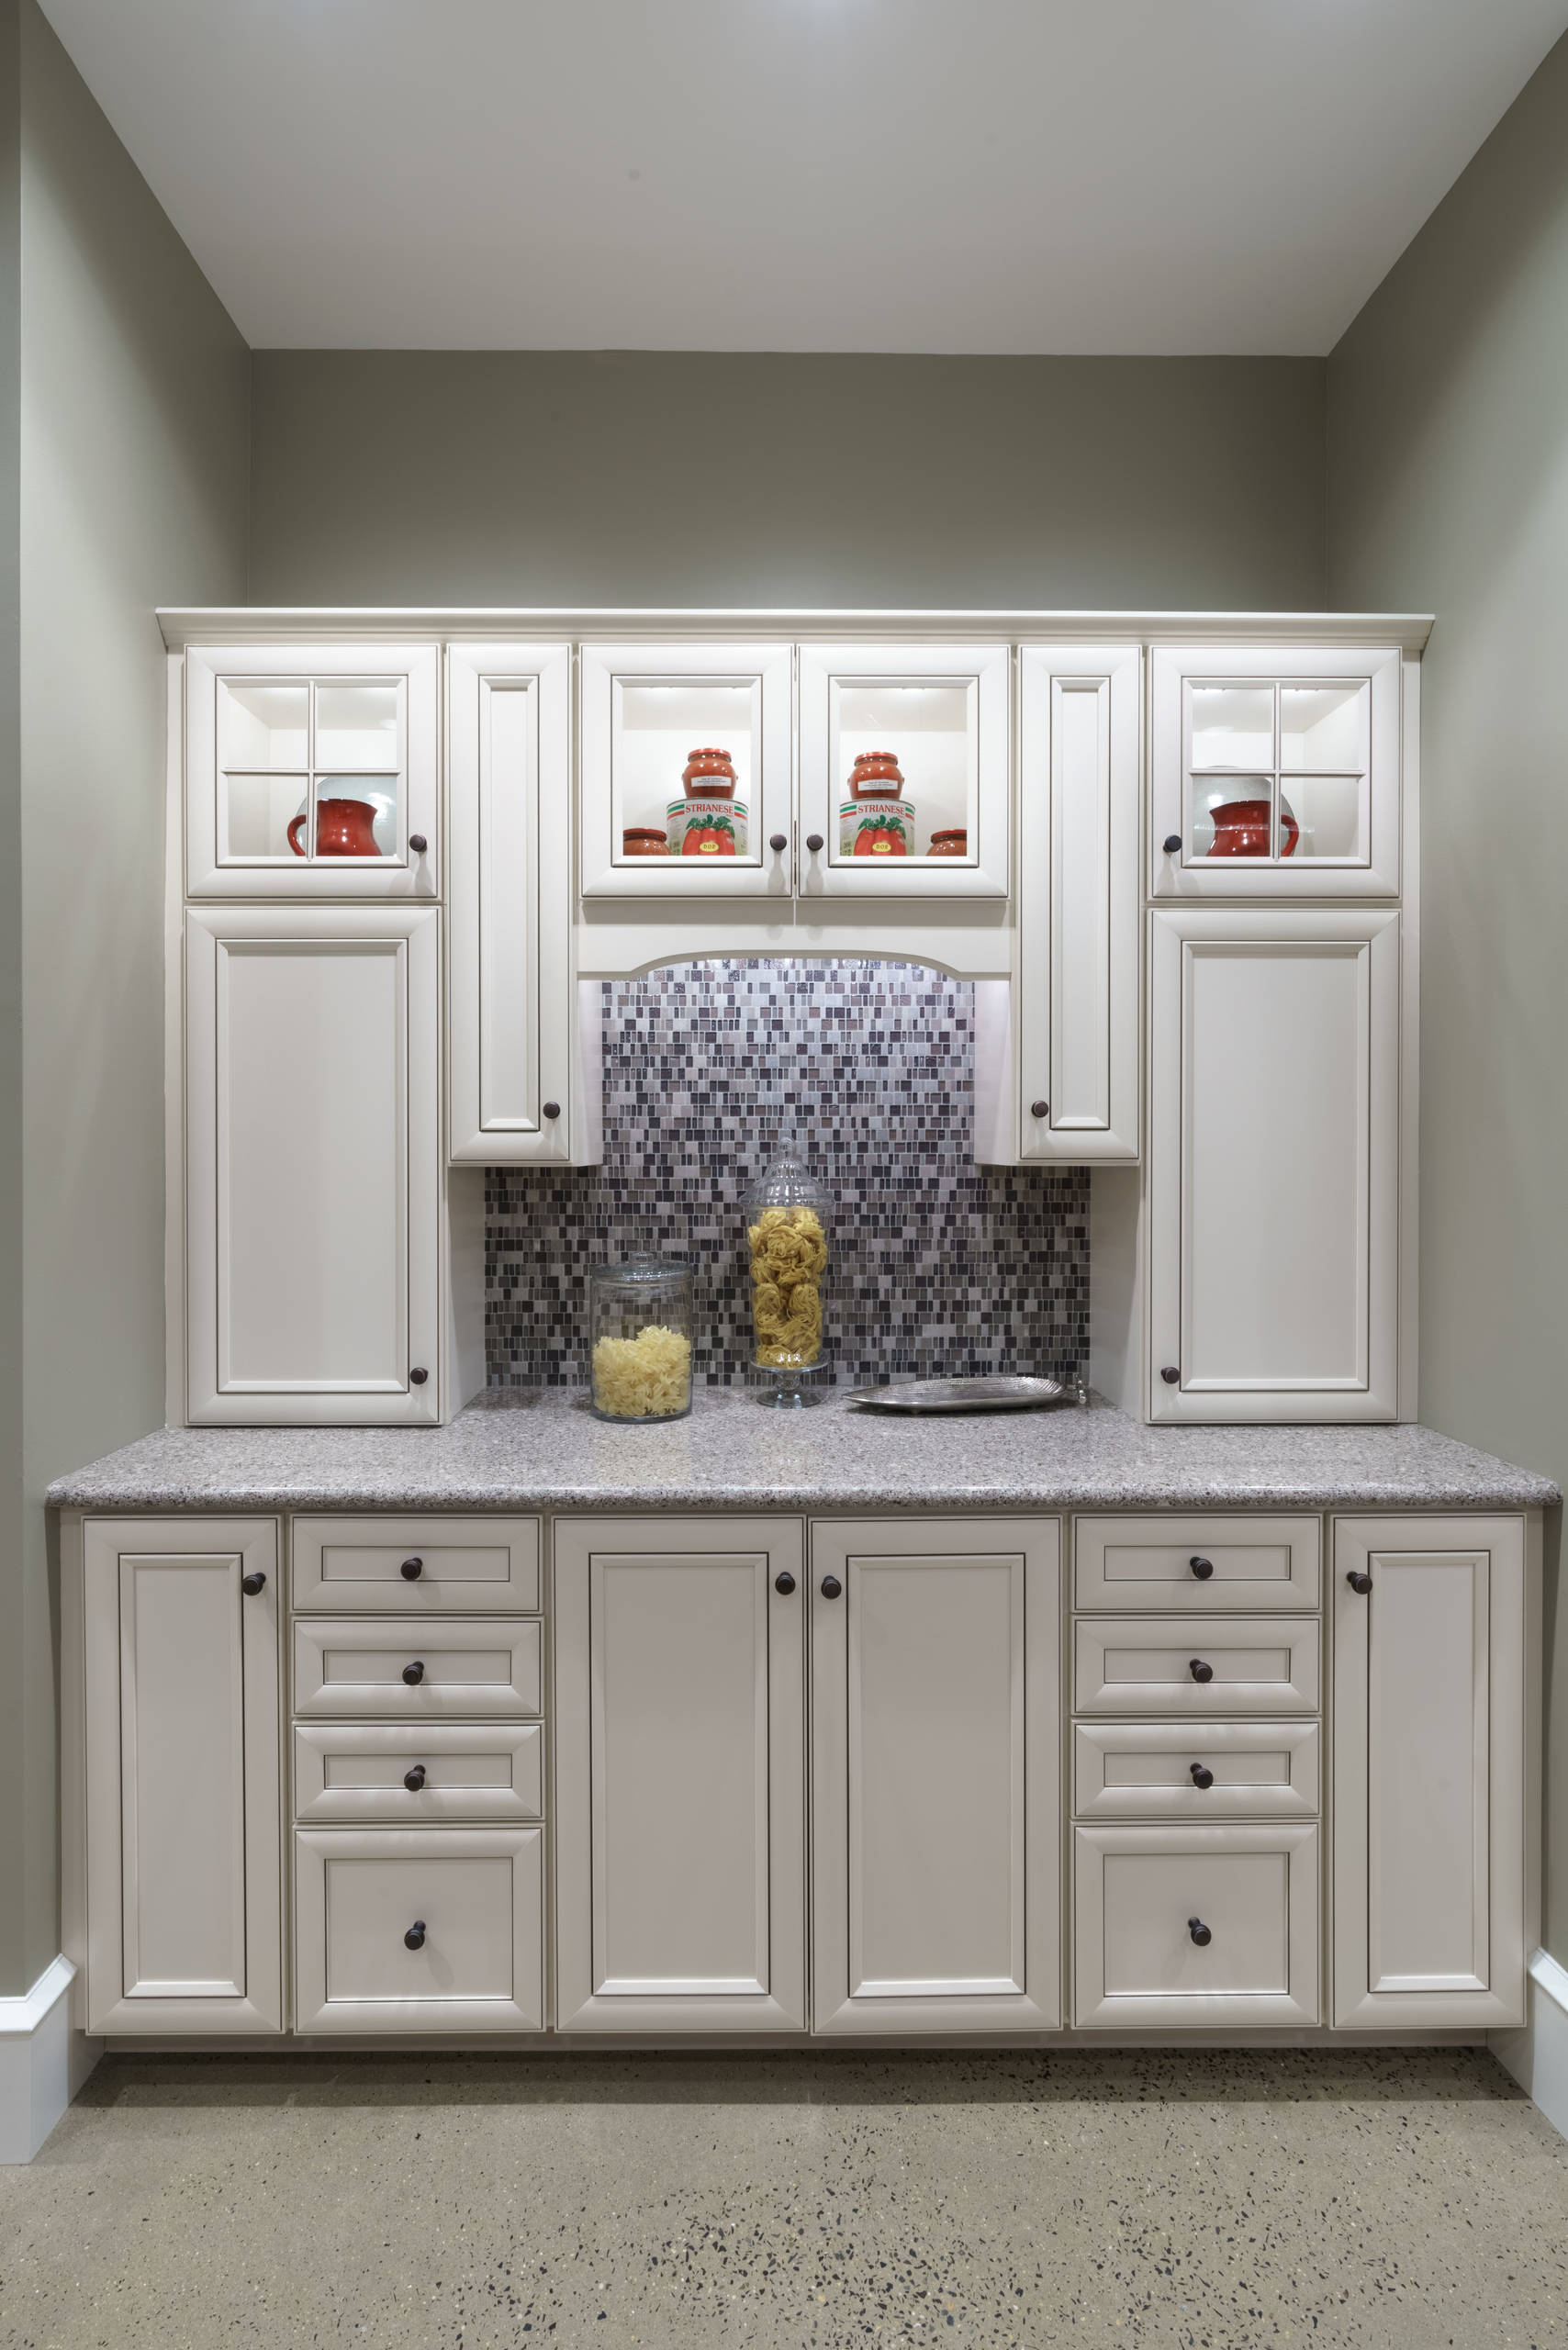 Toasted Antique Kitchen Ideas Photos Houzz